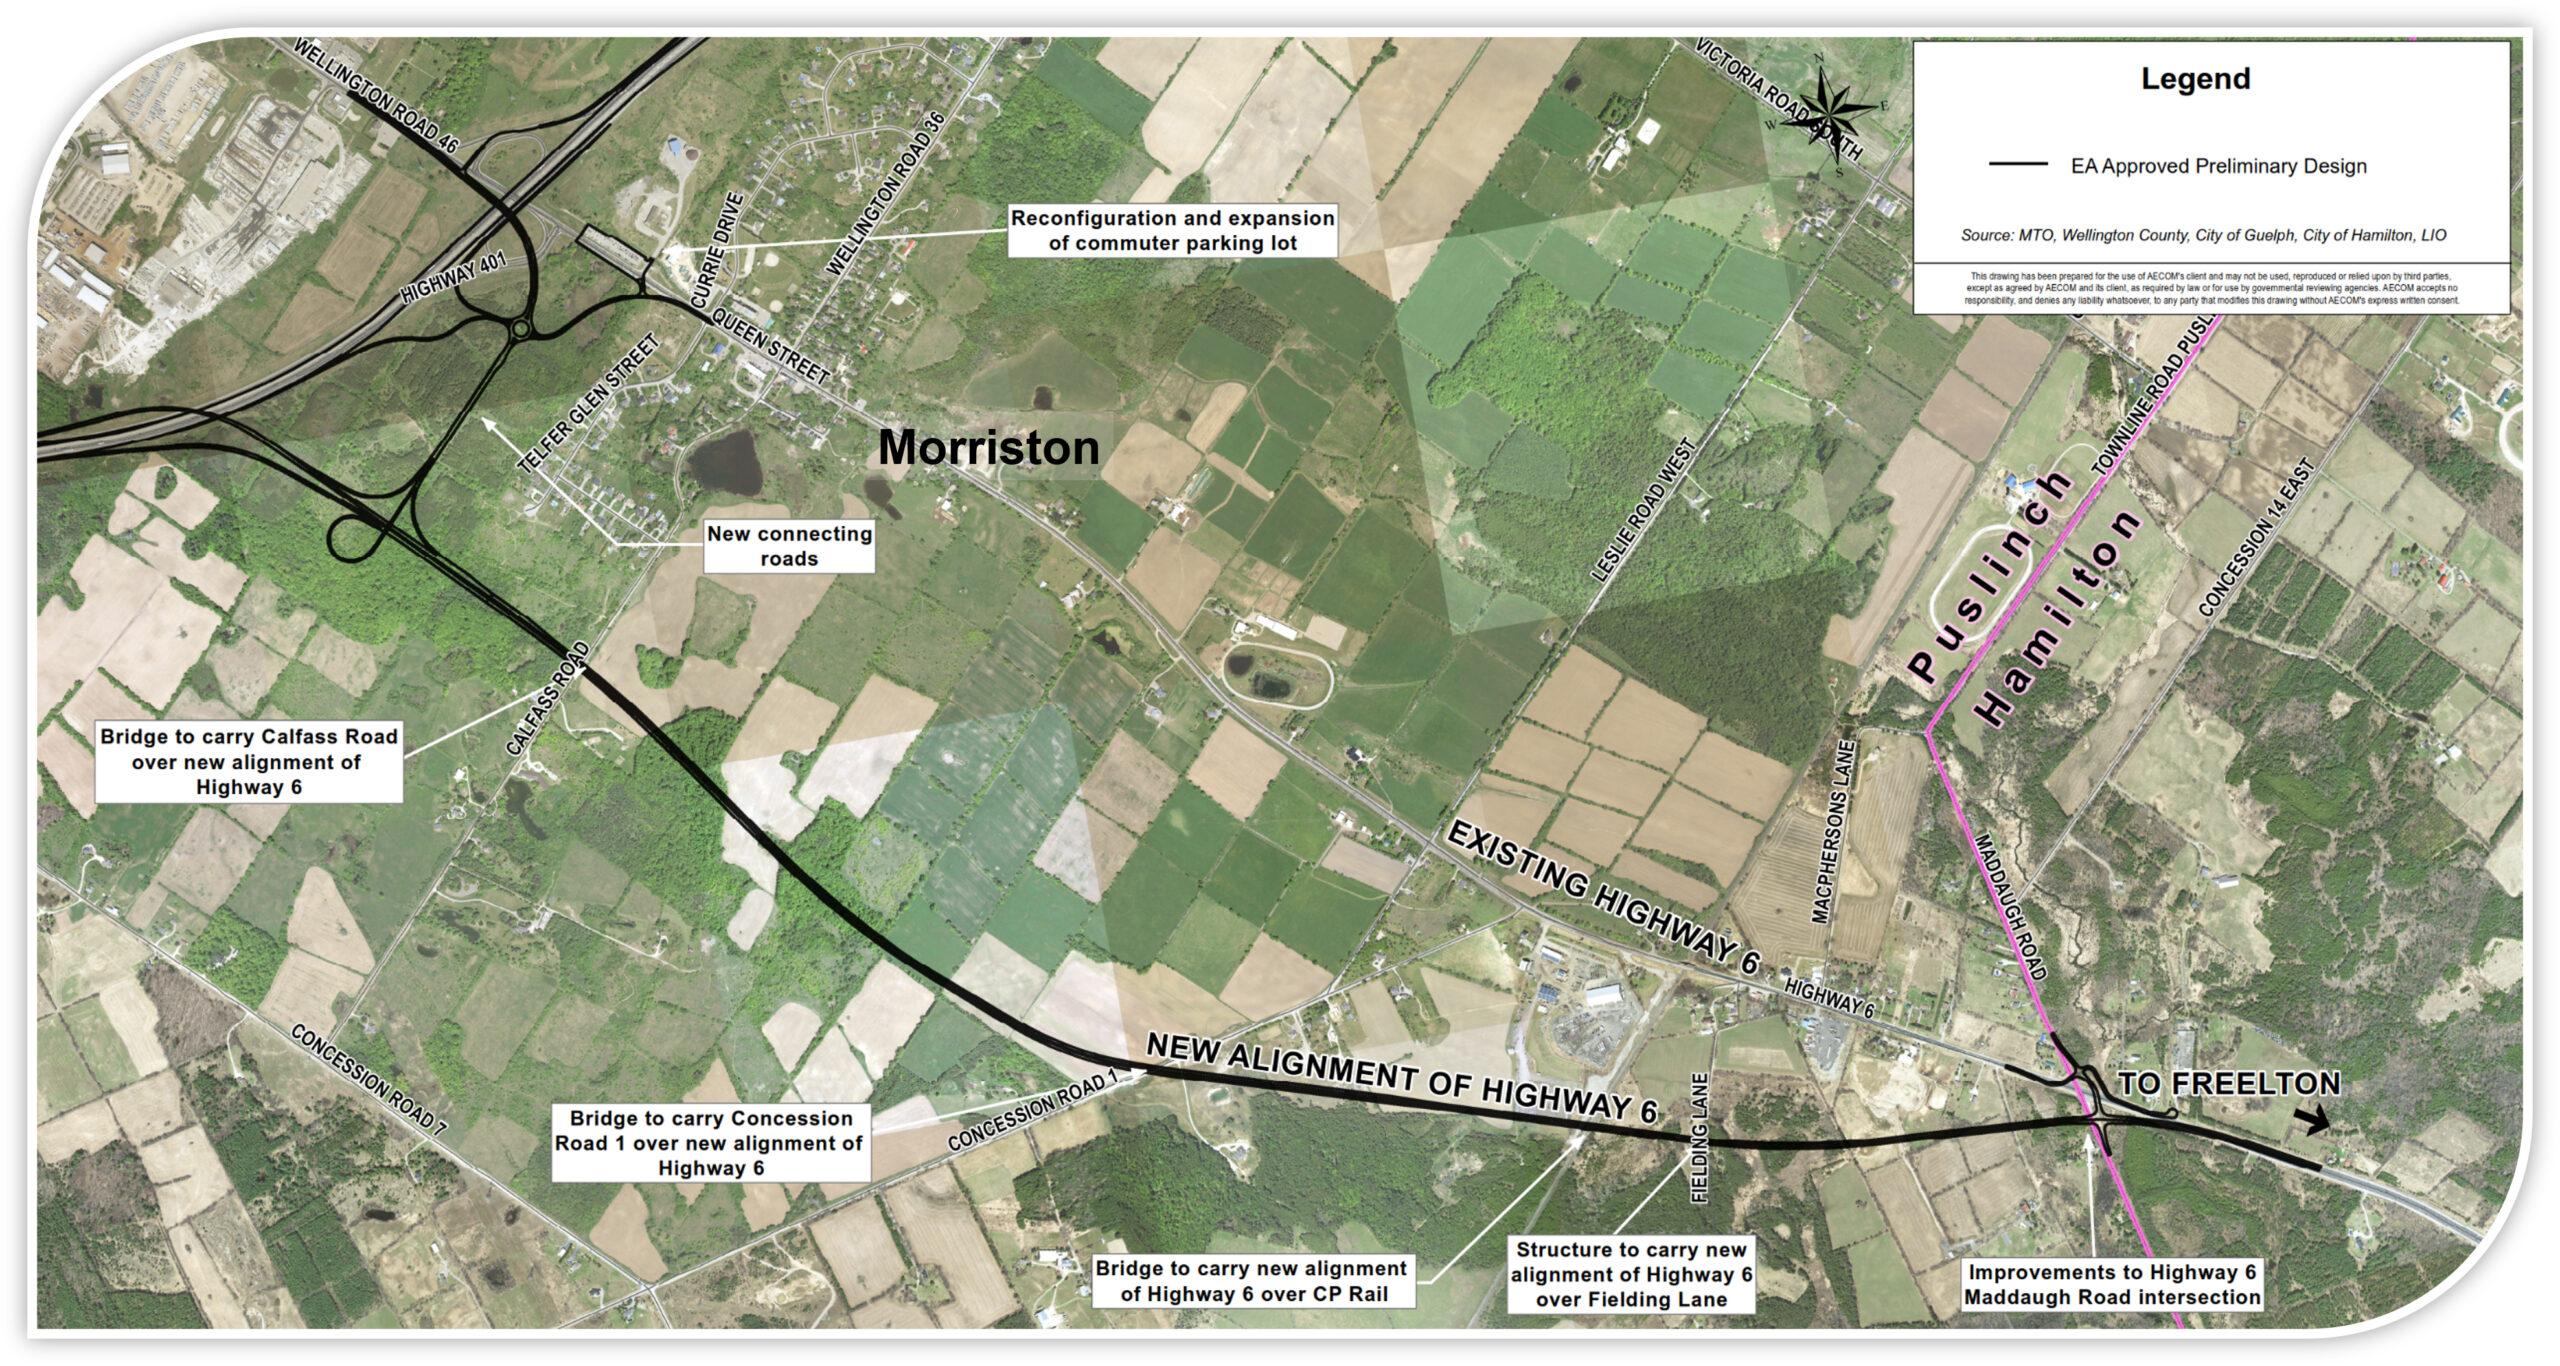 Aerial Map showing the plan that was approved under the previous EA reports for the new controlled access four-lane Highway 6 alignment. The plan shows: the reconfiguration and expansion of the Wellington Road 46 (Brock Road) commuter parking lot, New connecting roads, Bridge to carry Calfass Road over new alignment of Highway 6, Bridge to carry Concession Road 1 over new alignment of Highway 6, Bridge to carry new alignment of Highway 6 over CP Rail, Structure to carry new alignment of Highway 6 over Fielding Lane, and Improvements to Highway 6 Maddaugh Road Intersection.